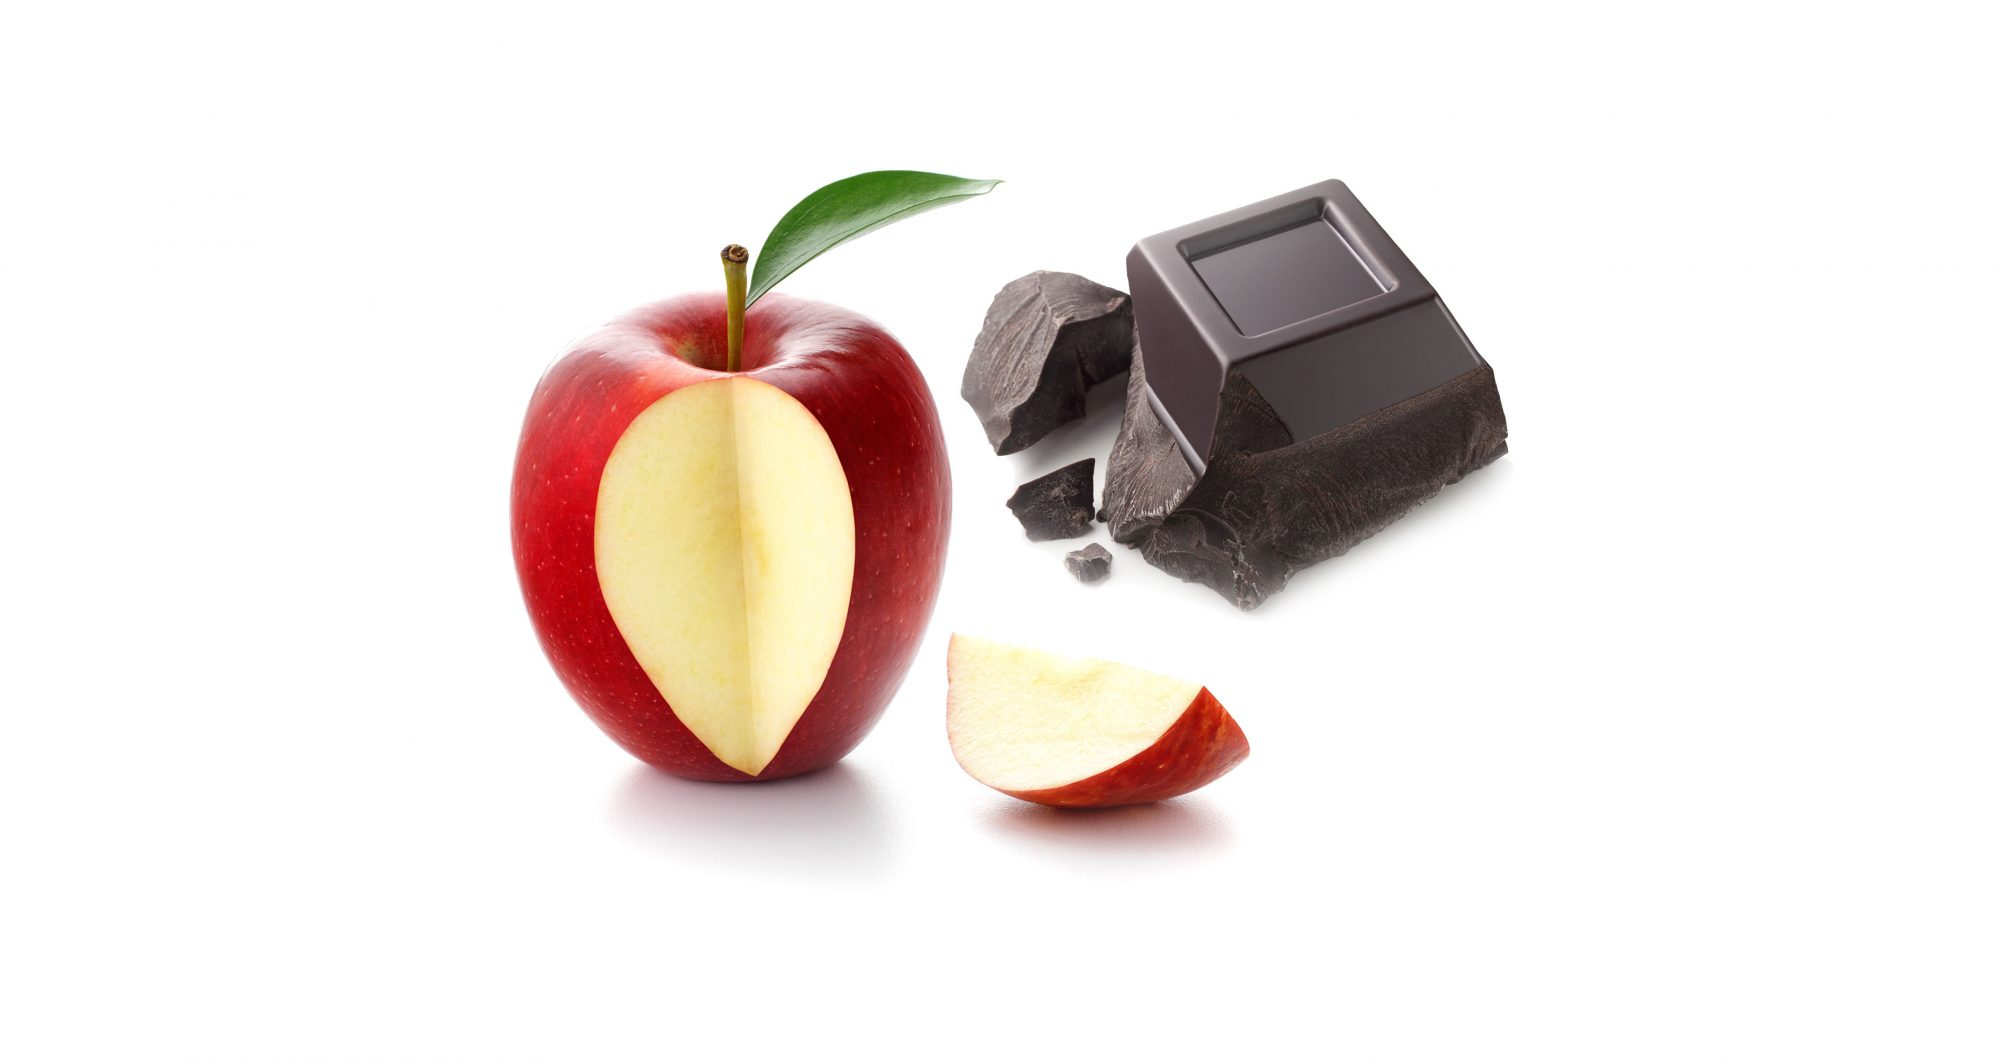 Dark chocolate + apples